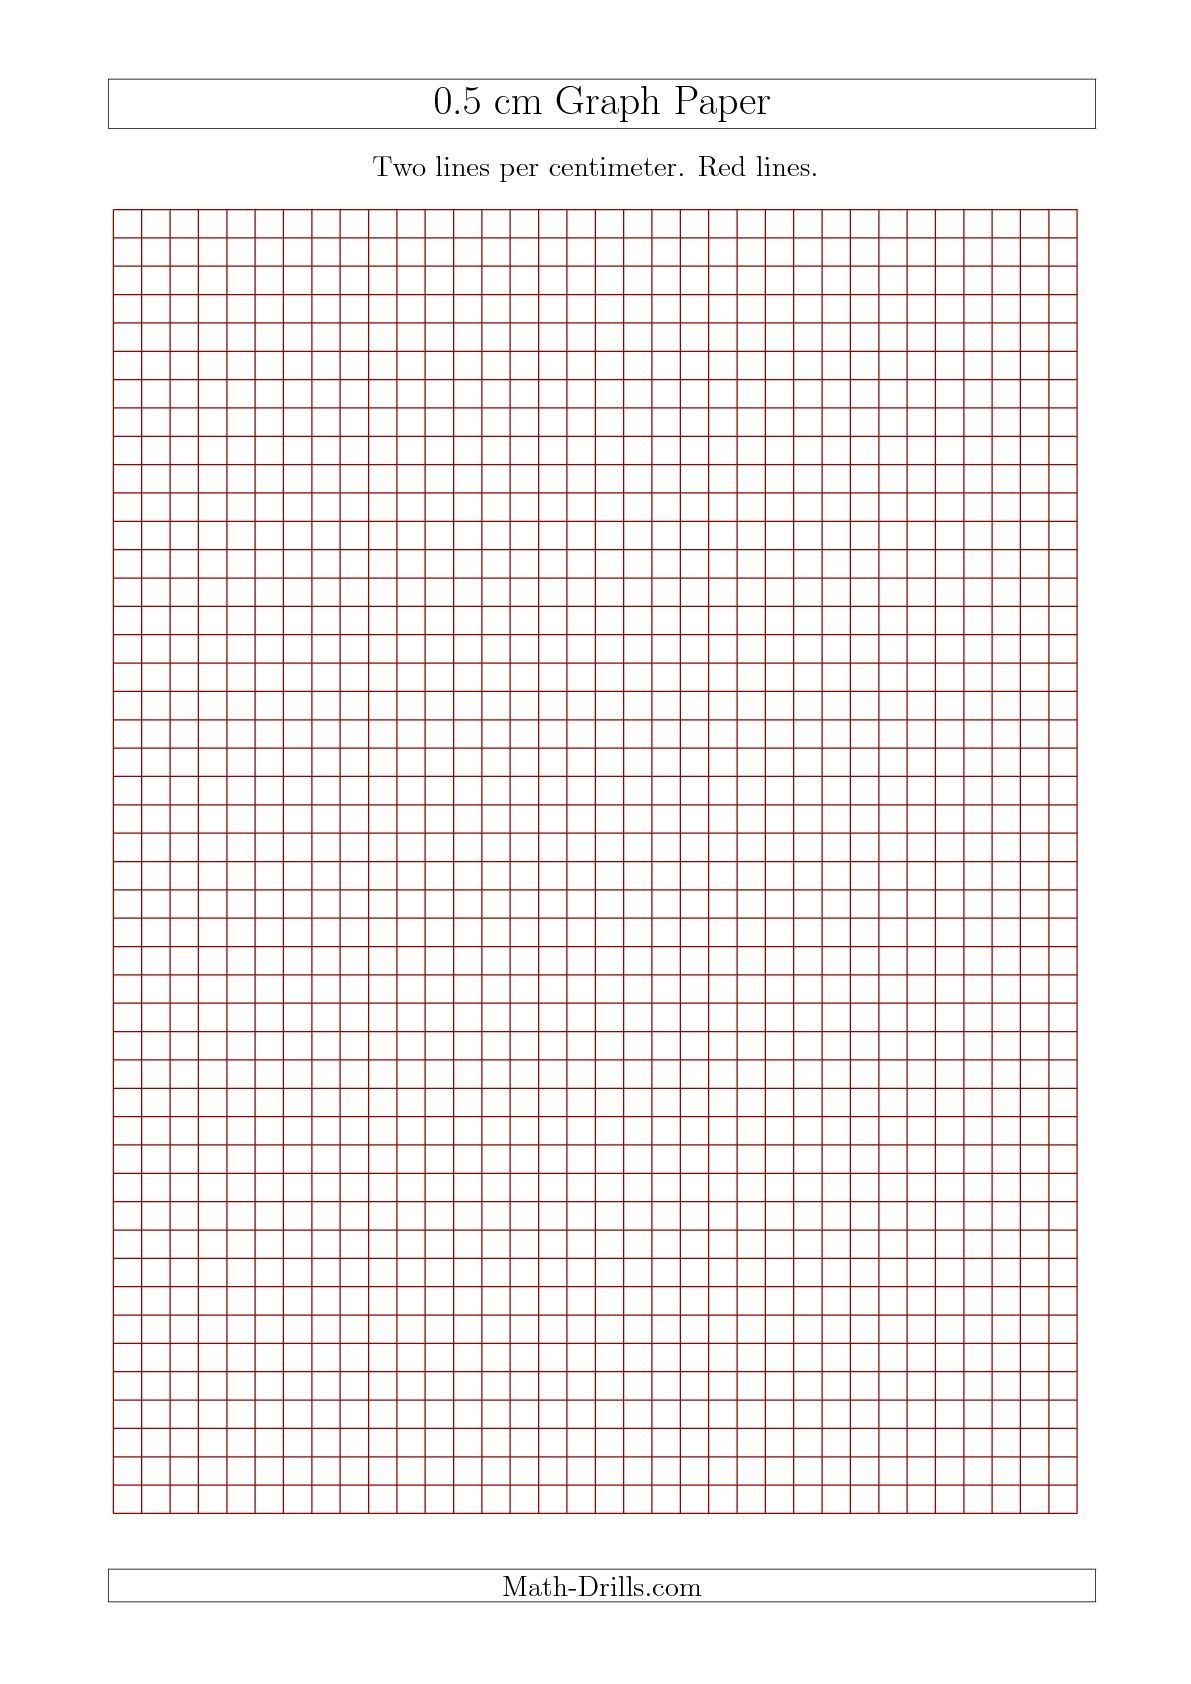 New 2015-09-17! 0.5 Cm Graph Paper With Red Lines (A4 Size) Math - Free Printable Graph Paper With Numbers